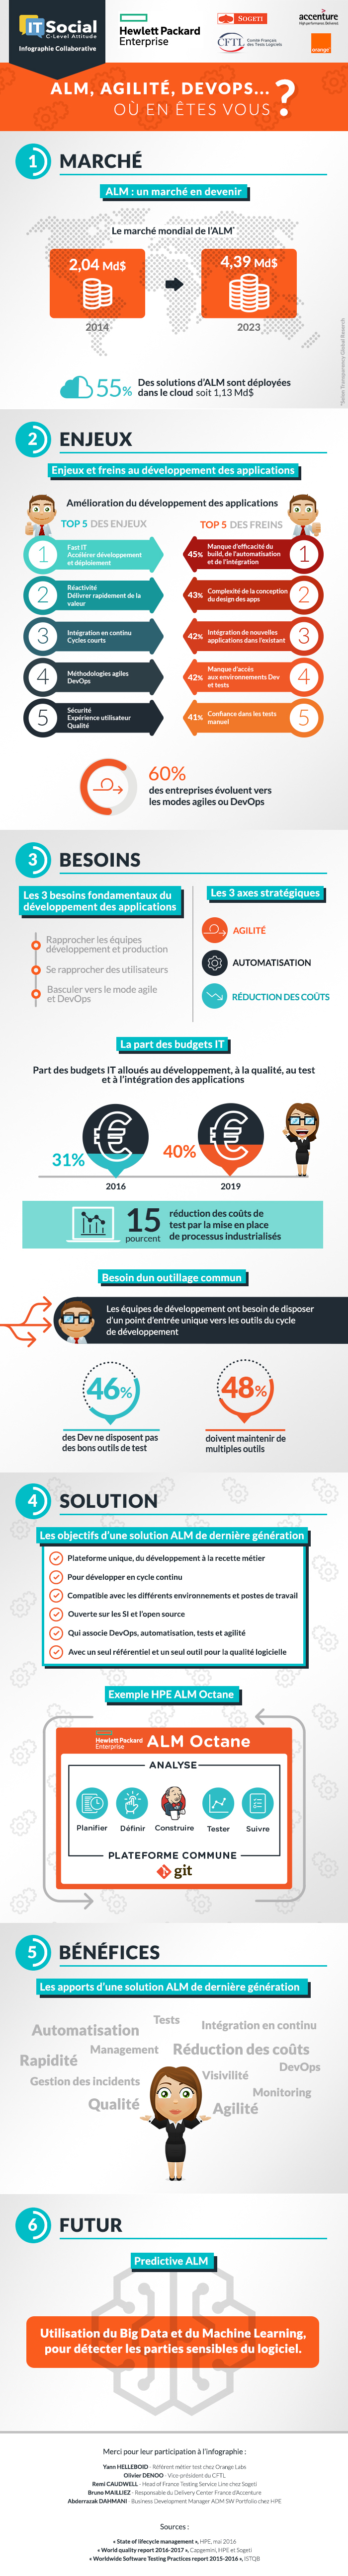 ITSOCIAL_Infographie_700-DEF